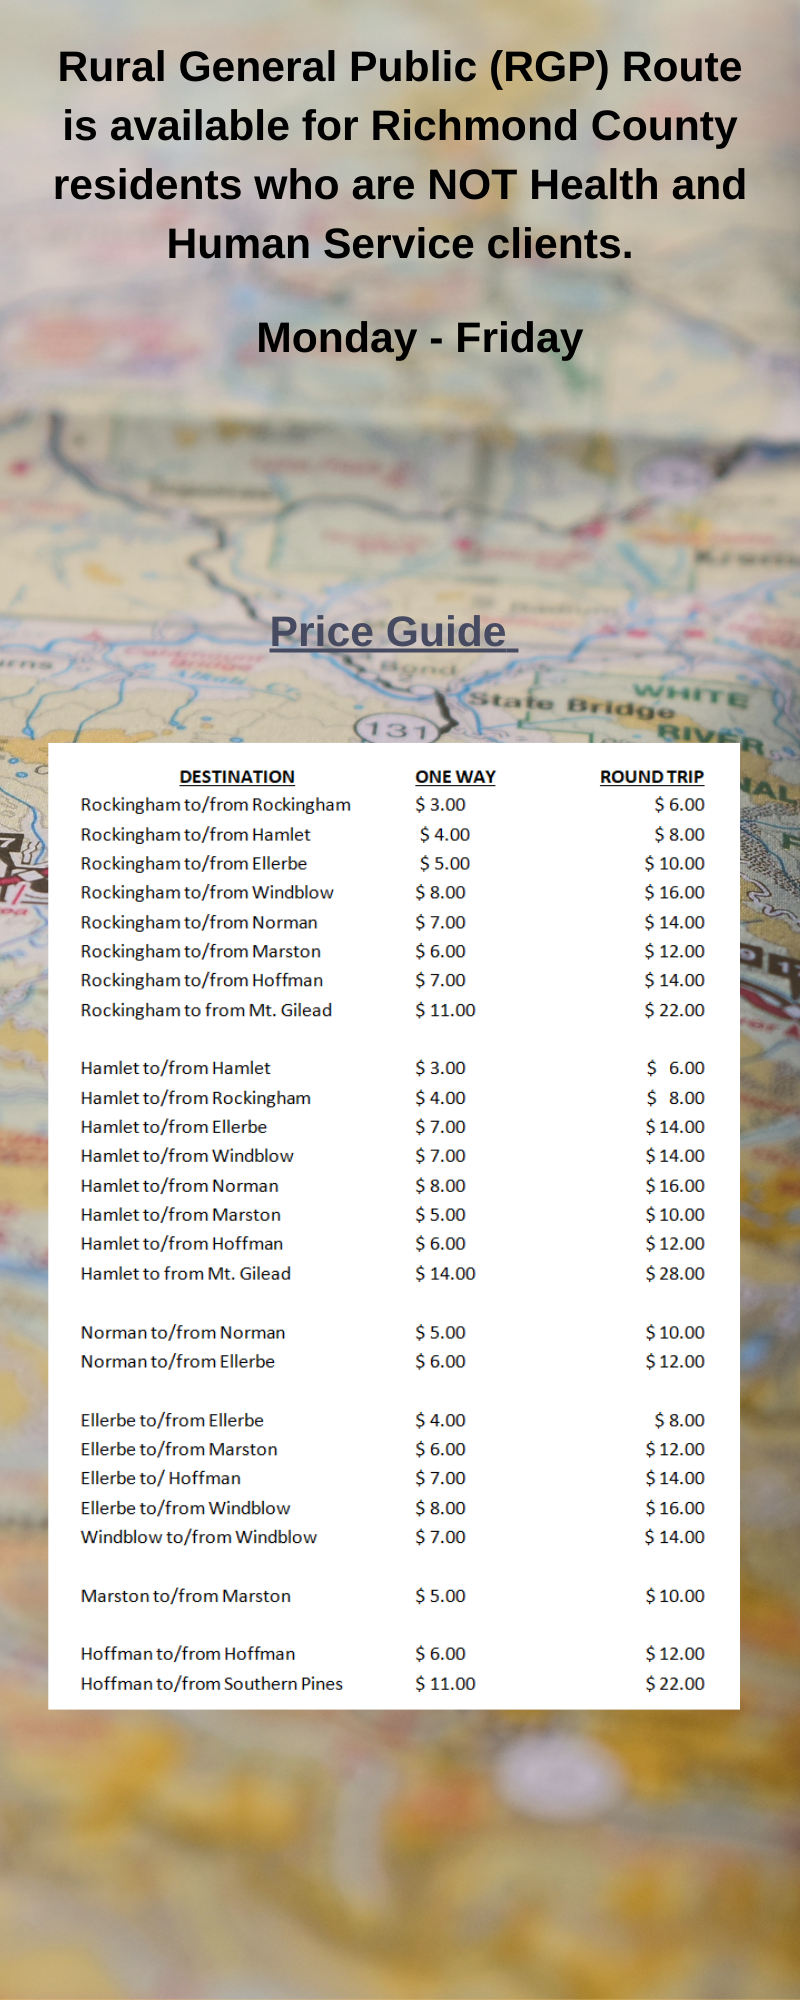 RGP Price Guide